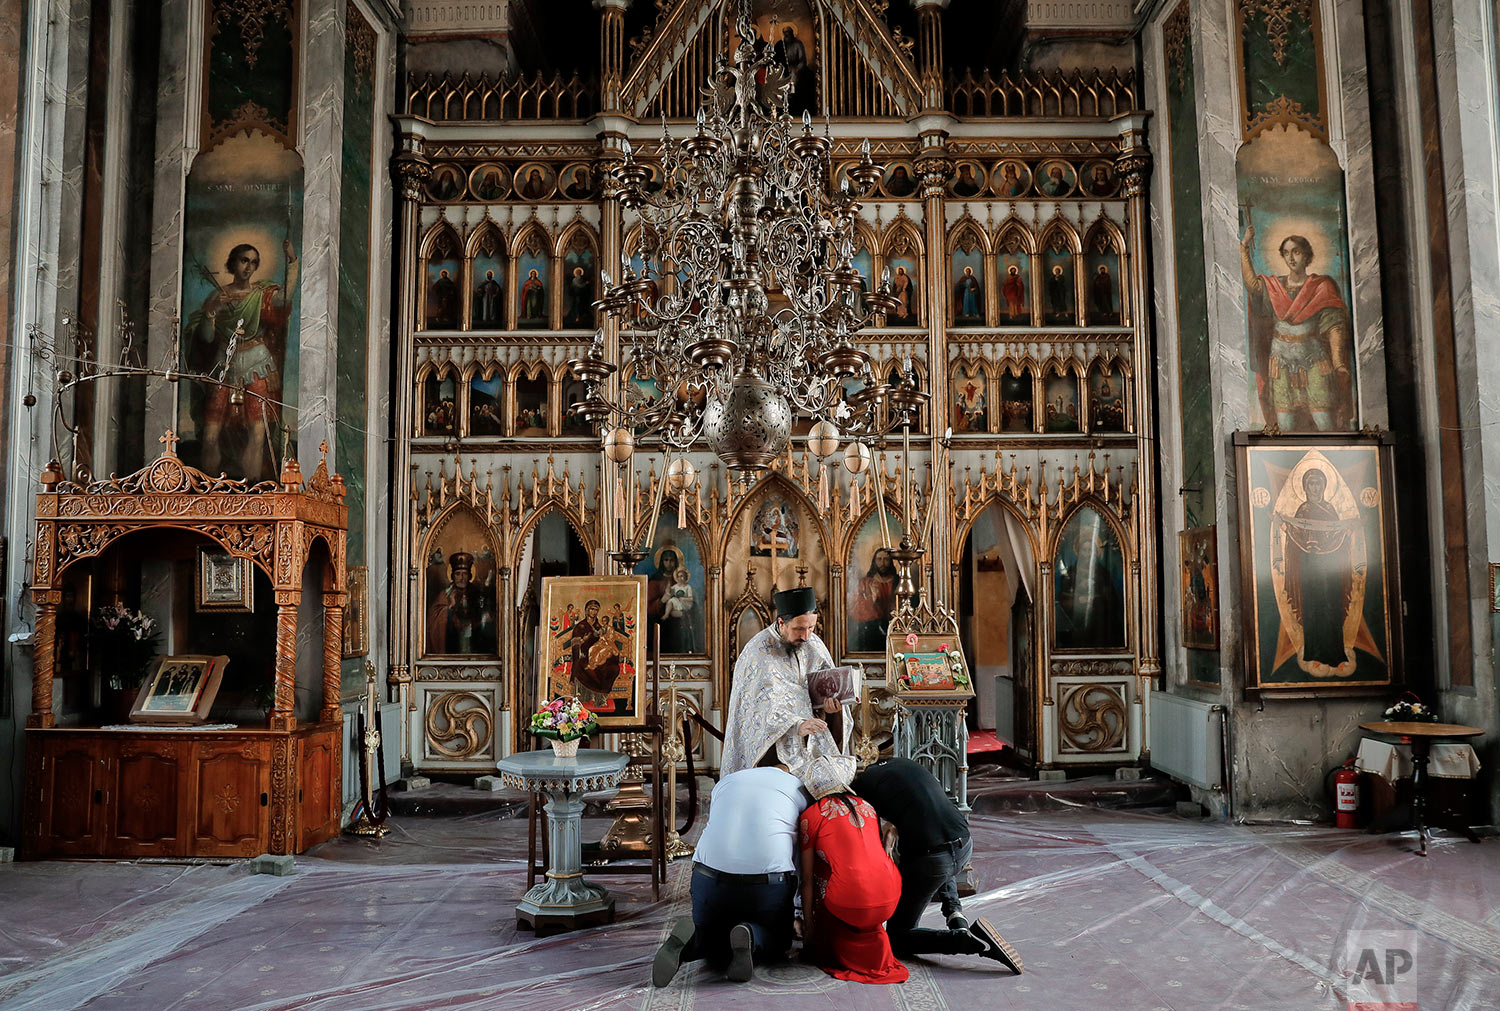 In this Friday, Sept. 8, 2017 photograph, members of the Roma community kneel before a priest reading prayers at the church in the Bistrita monastery compound in Costesti, Romania. (AP Photo/Vadim Ghirda)